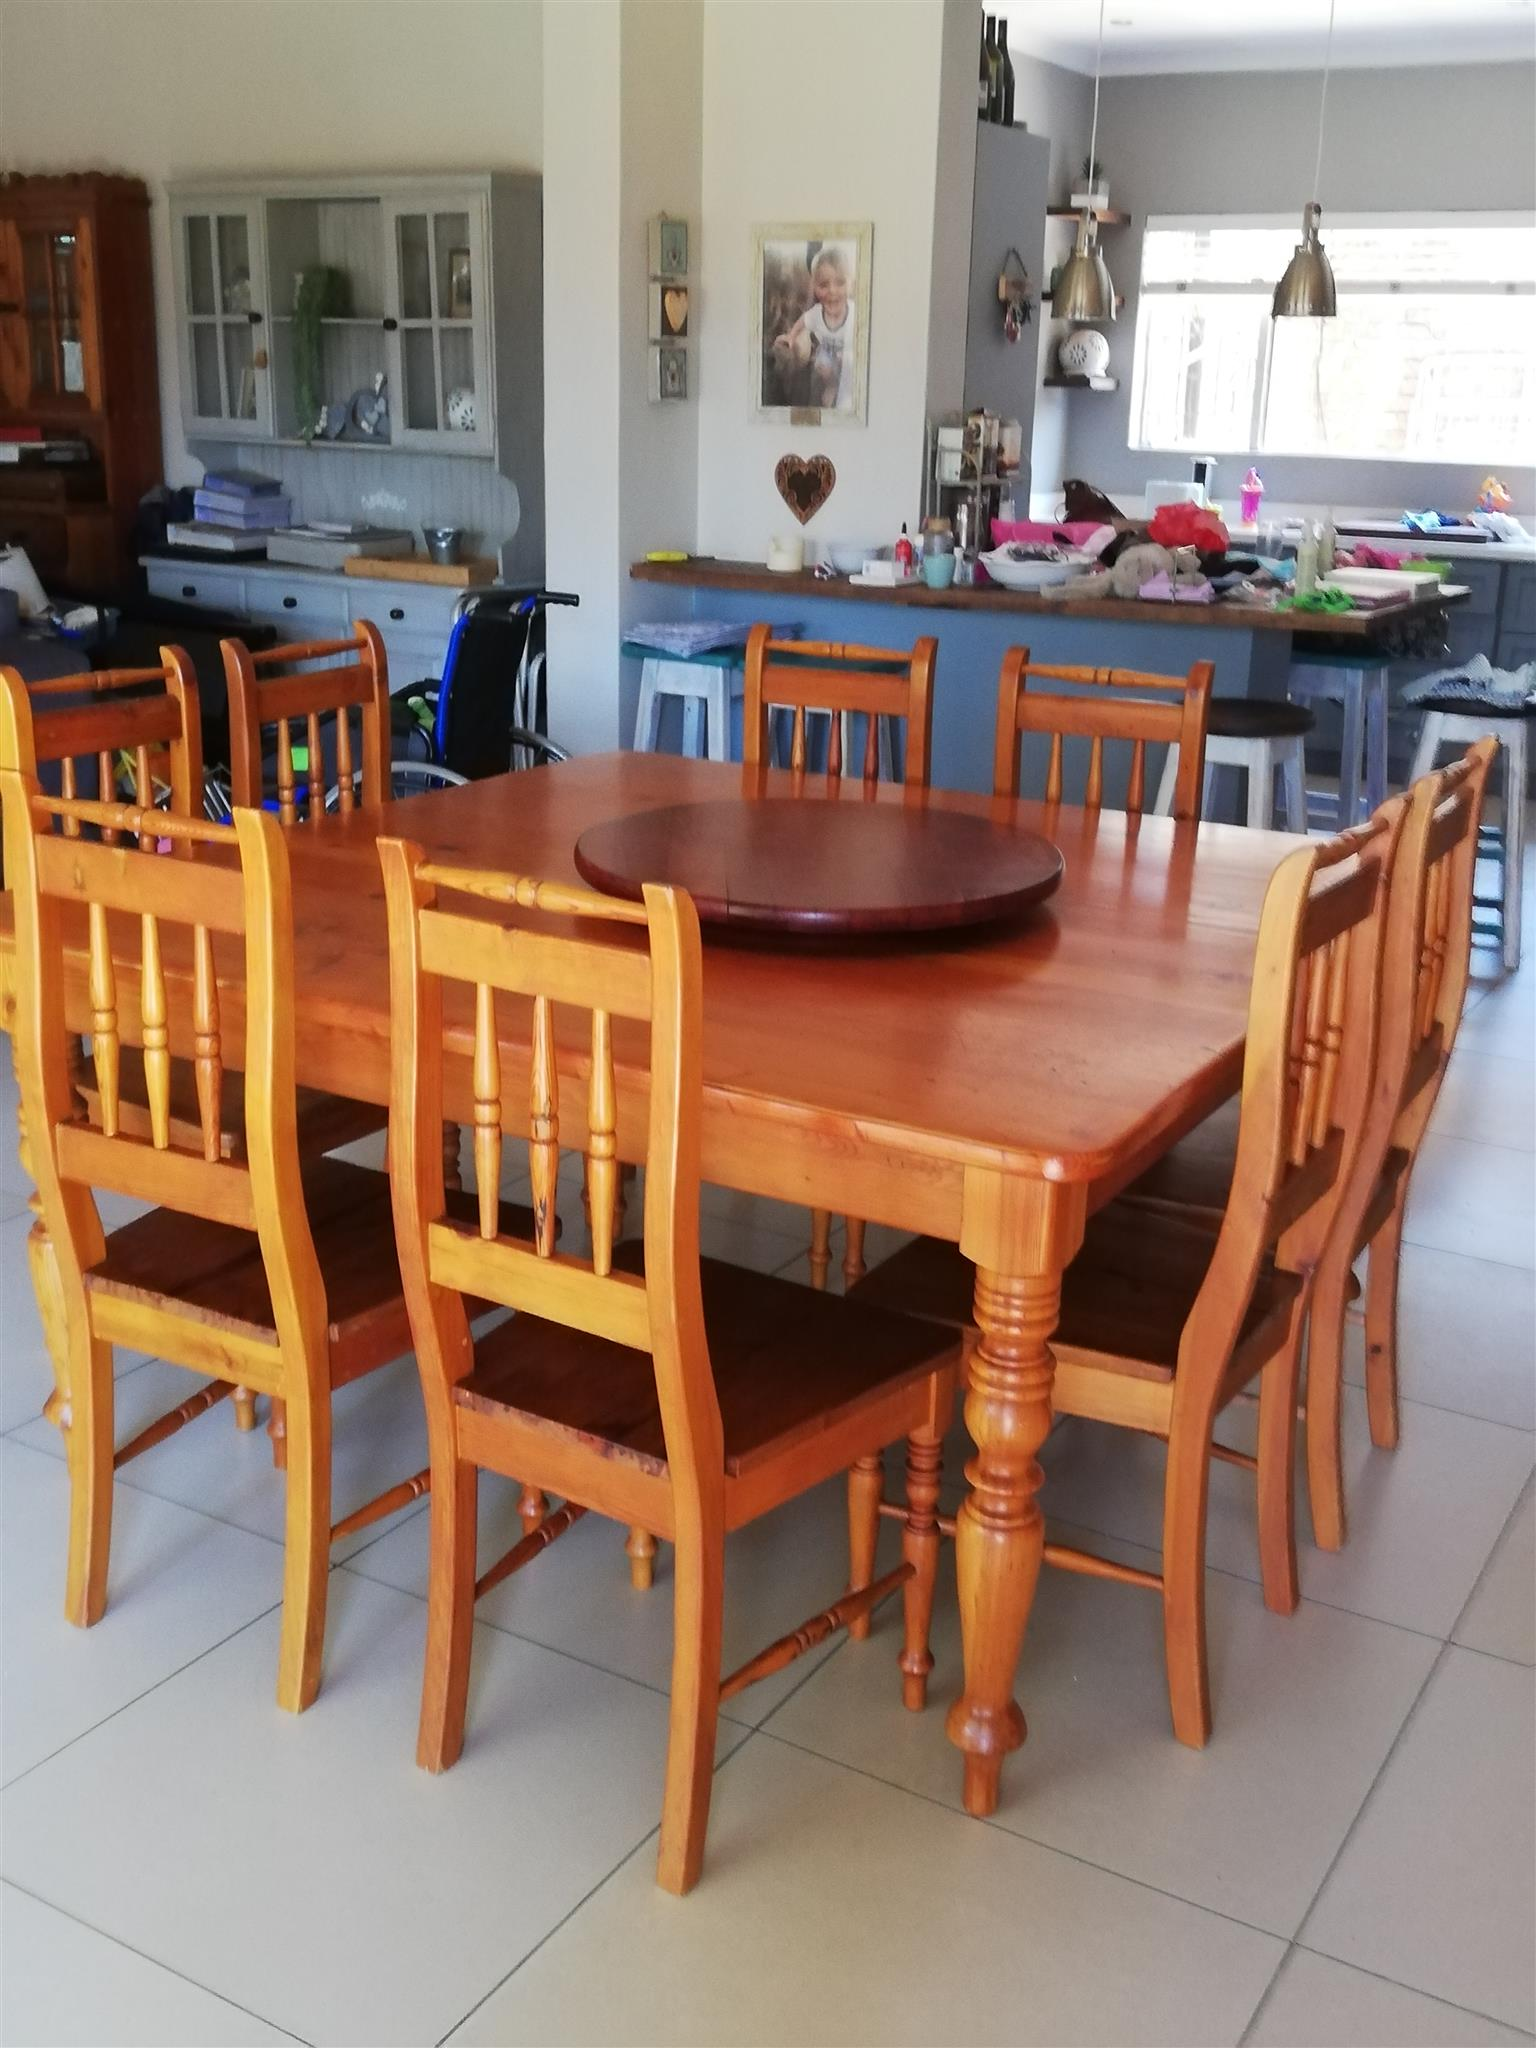 8 Seat Solid Oregeon Pine Diningroom Table And Chairs Plus